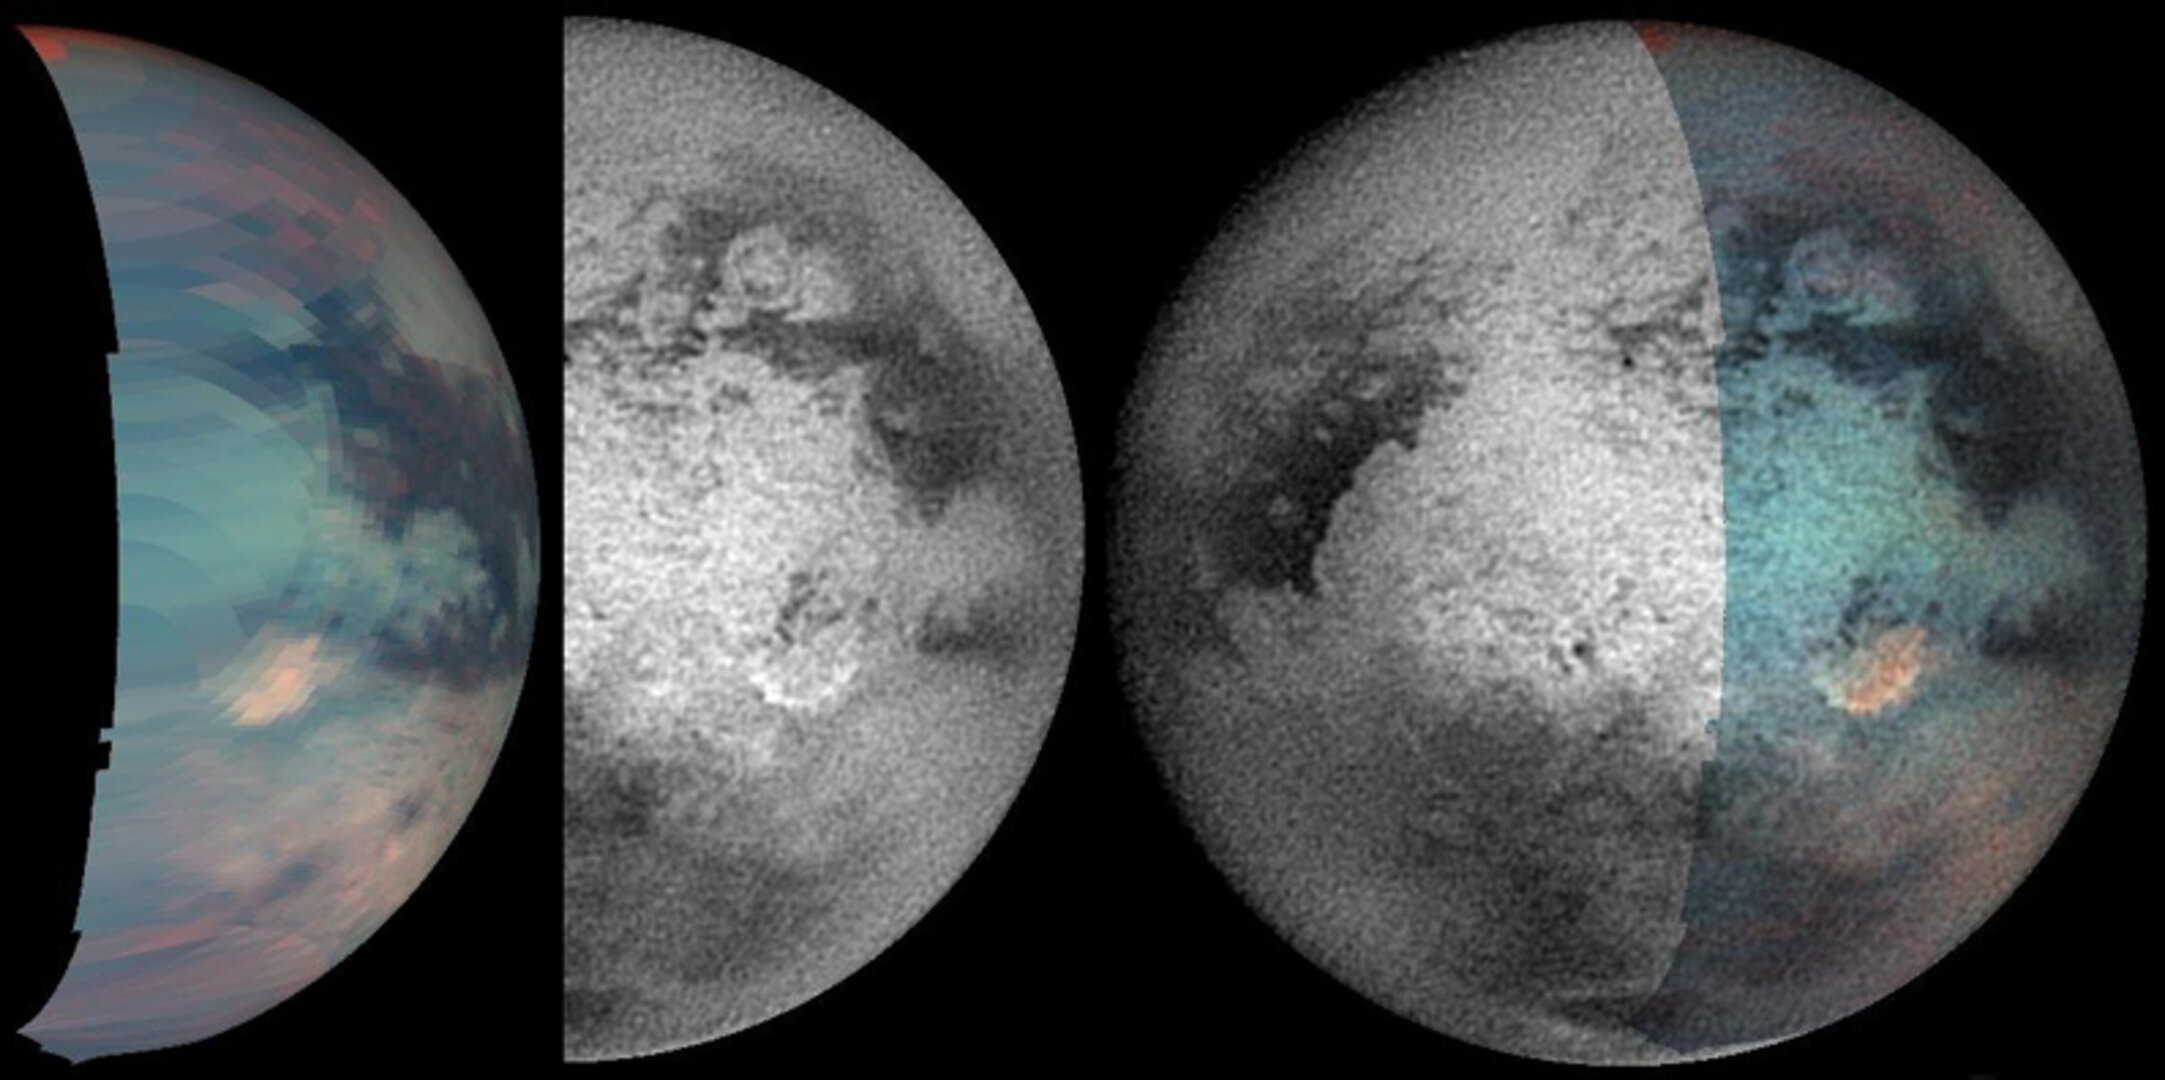 Titan's odd spot observed by different instruments